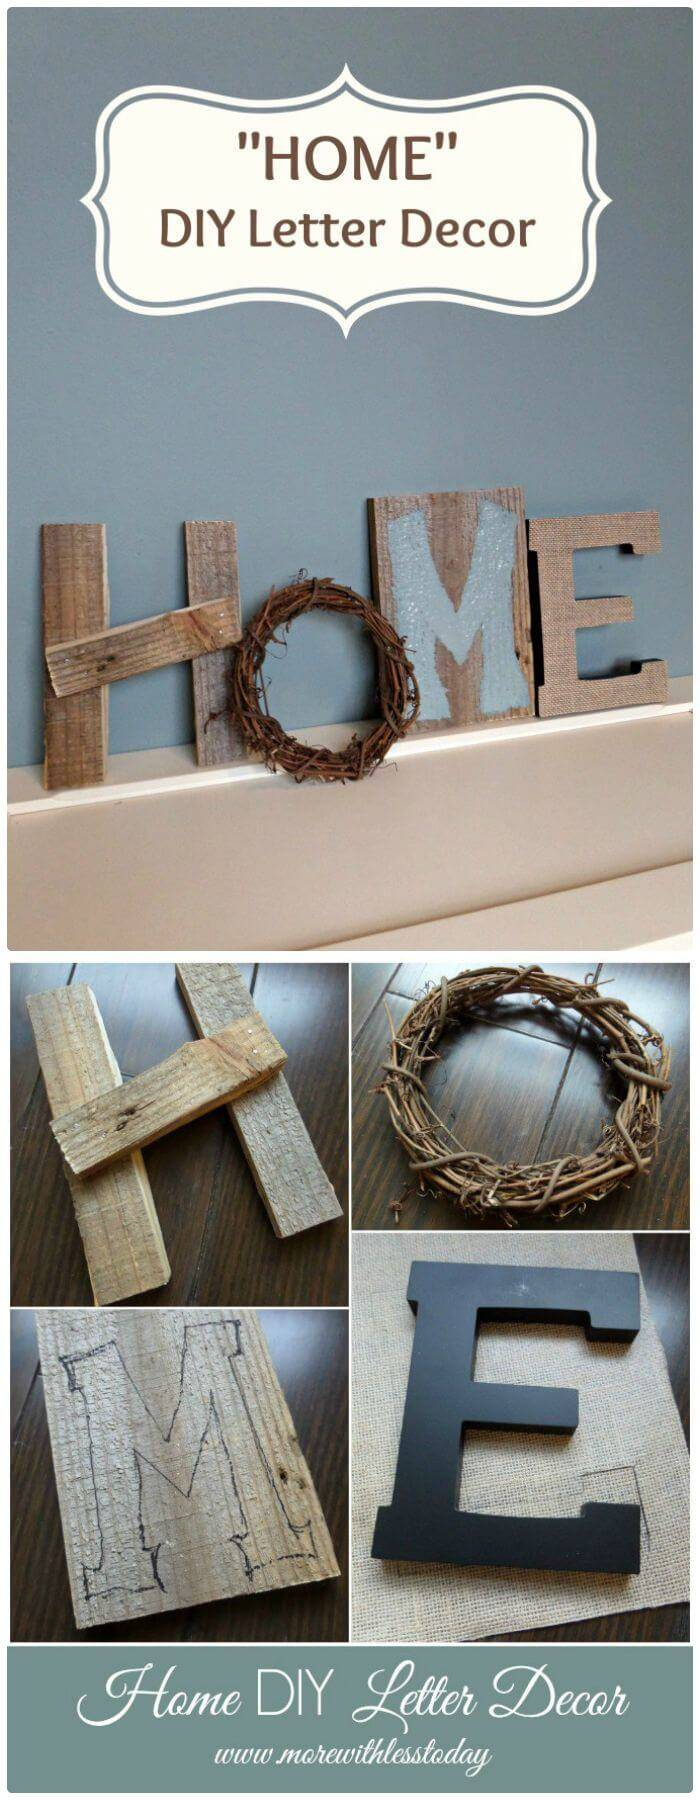 40 Diy Home Decor Projects On A Cheap Budget Diy Crafts